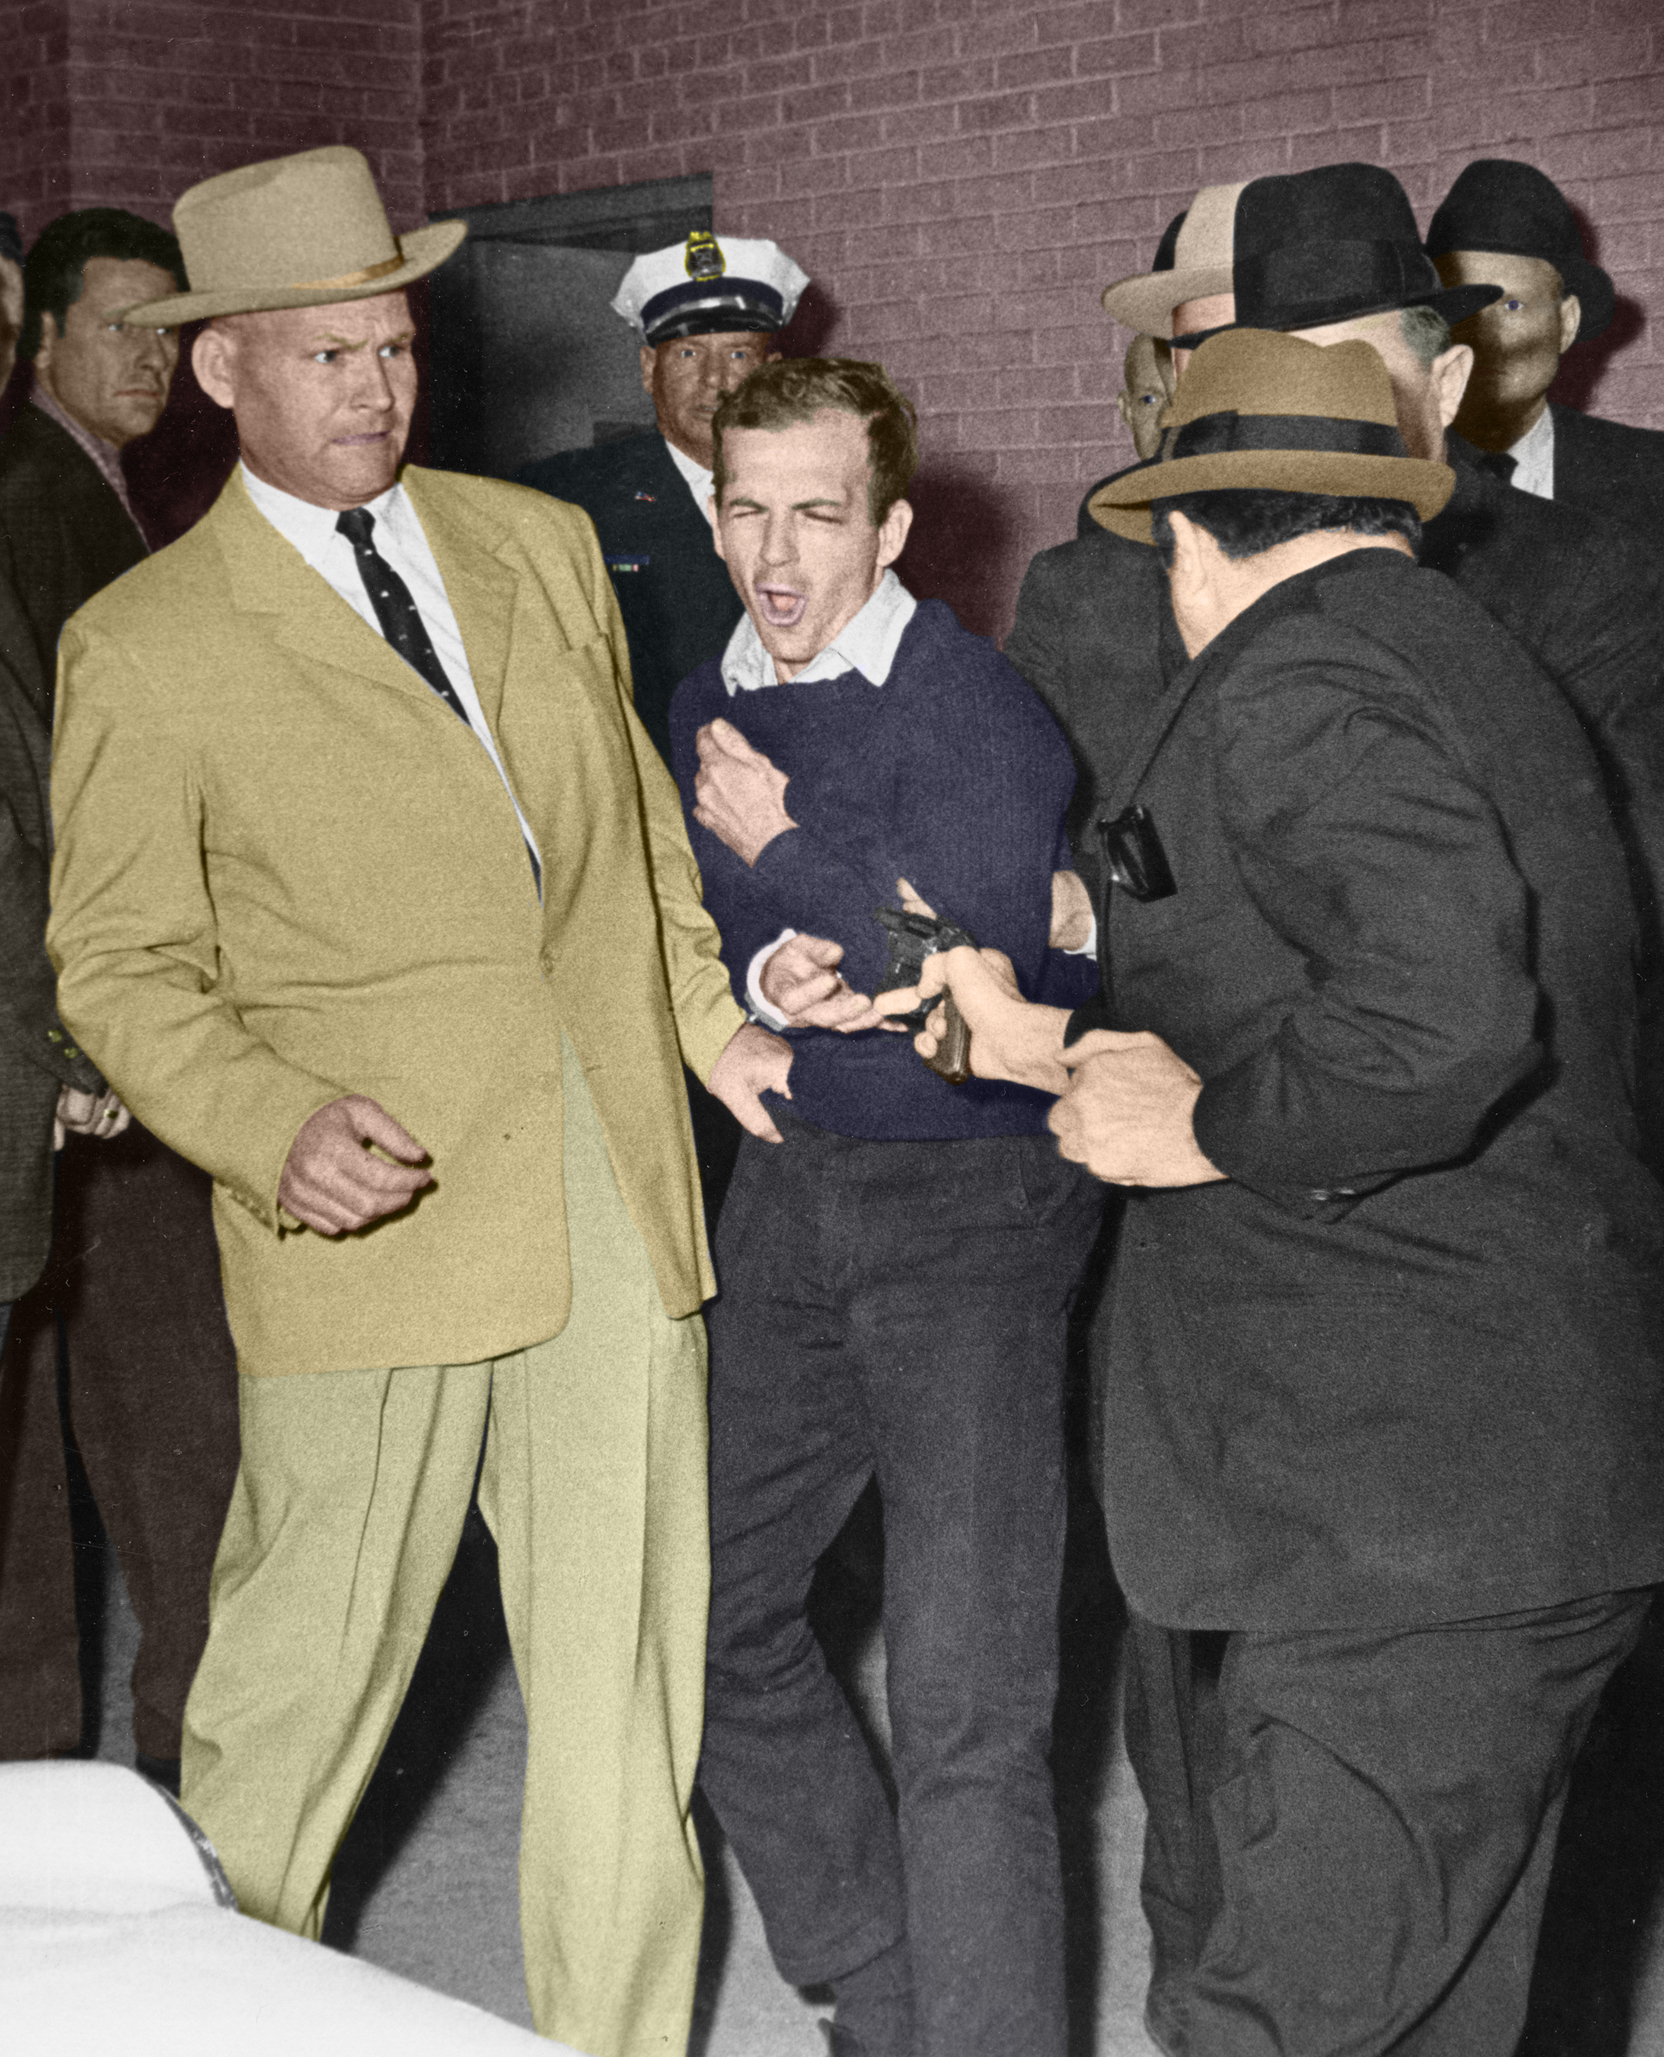 (image: http://fc08.deviantart.net/fs70/f/2013/166/f/f/lee_harvey_oswald_assassination_in_color_by_bojanglesthecat-d696gqm.jpg)